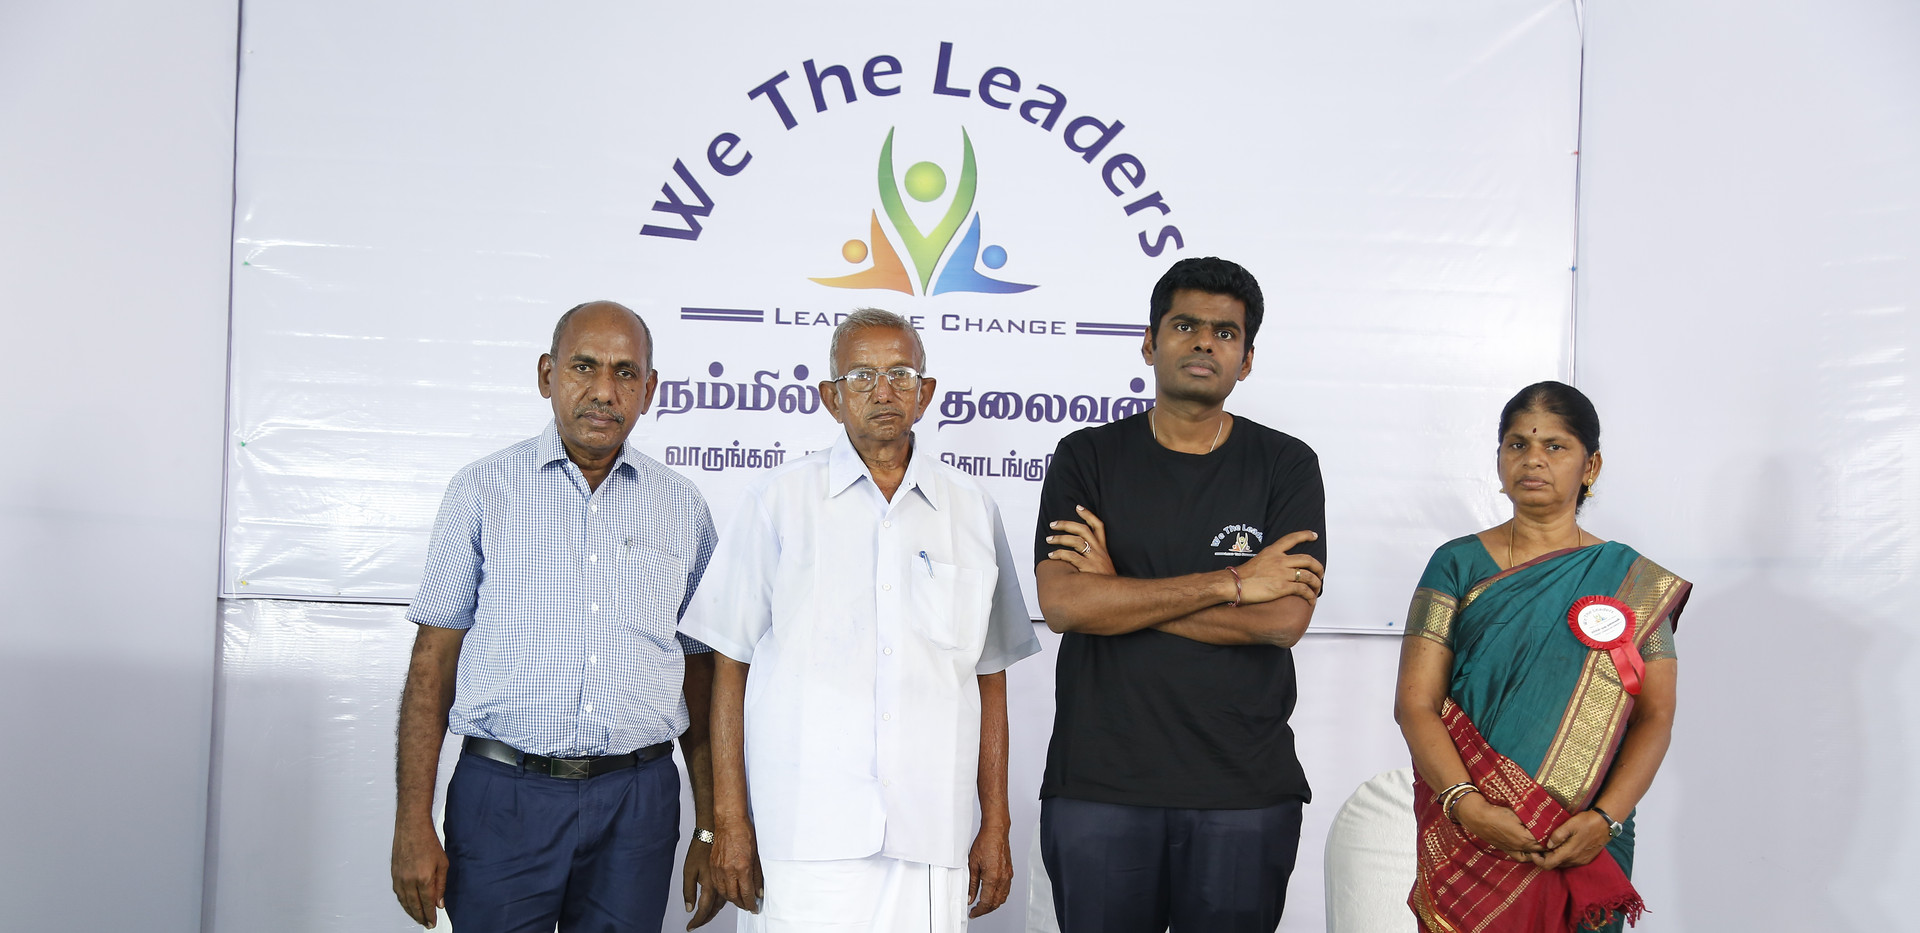 Annamalai K, Former IPS Officer | We The Leaders Foundation